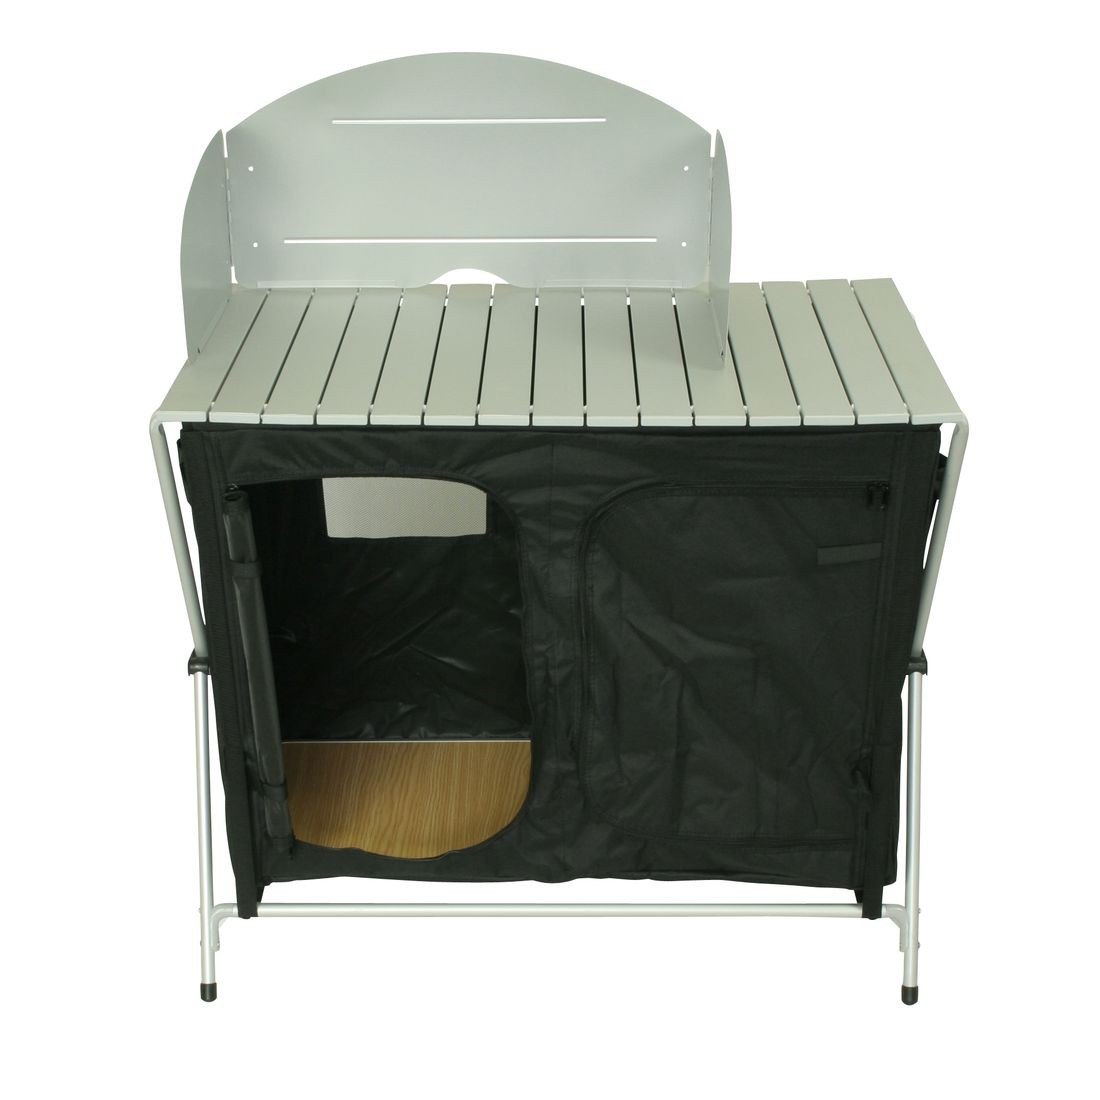 10t Flapbox Kitchen Camping Kitchen 3 Compartments